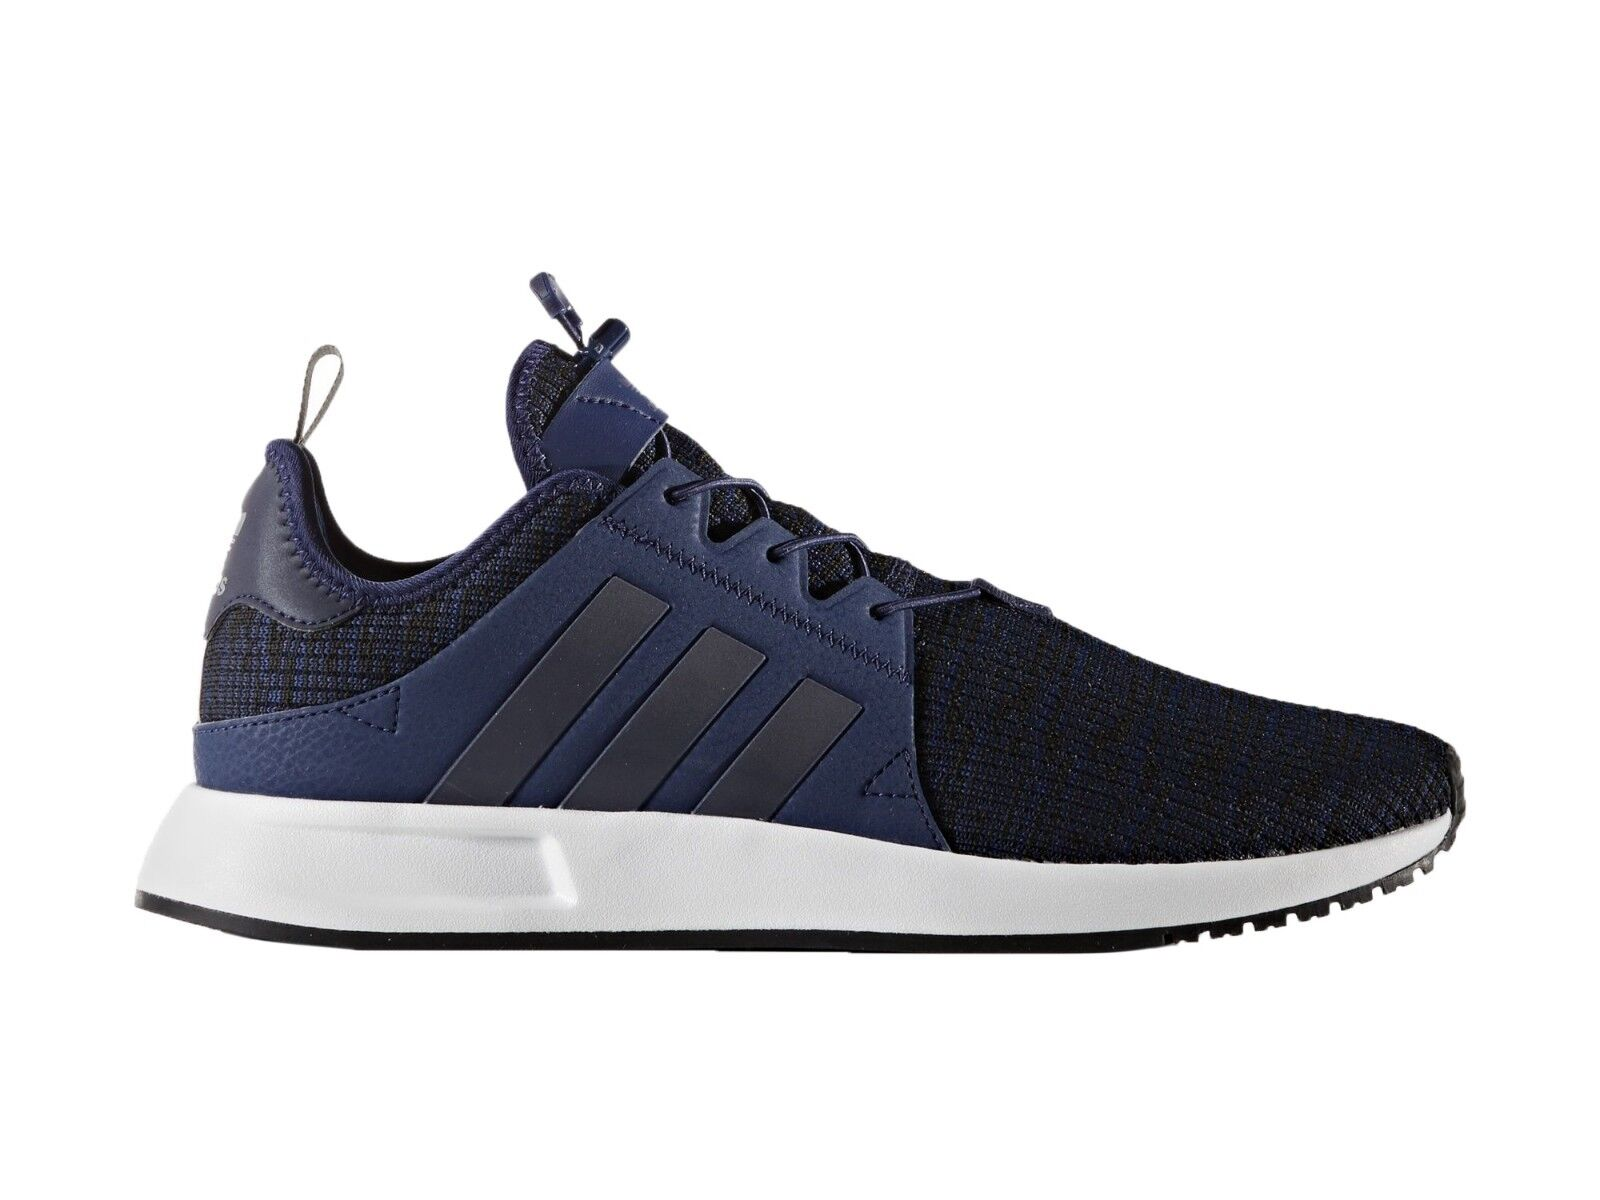 Herrenschuhe Trainers BY9256 Sneakers ADIDAS ORIGINALS X_PLR BY9256 Trainers 6eeb87